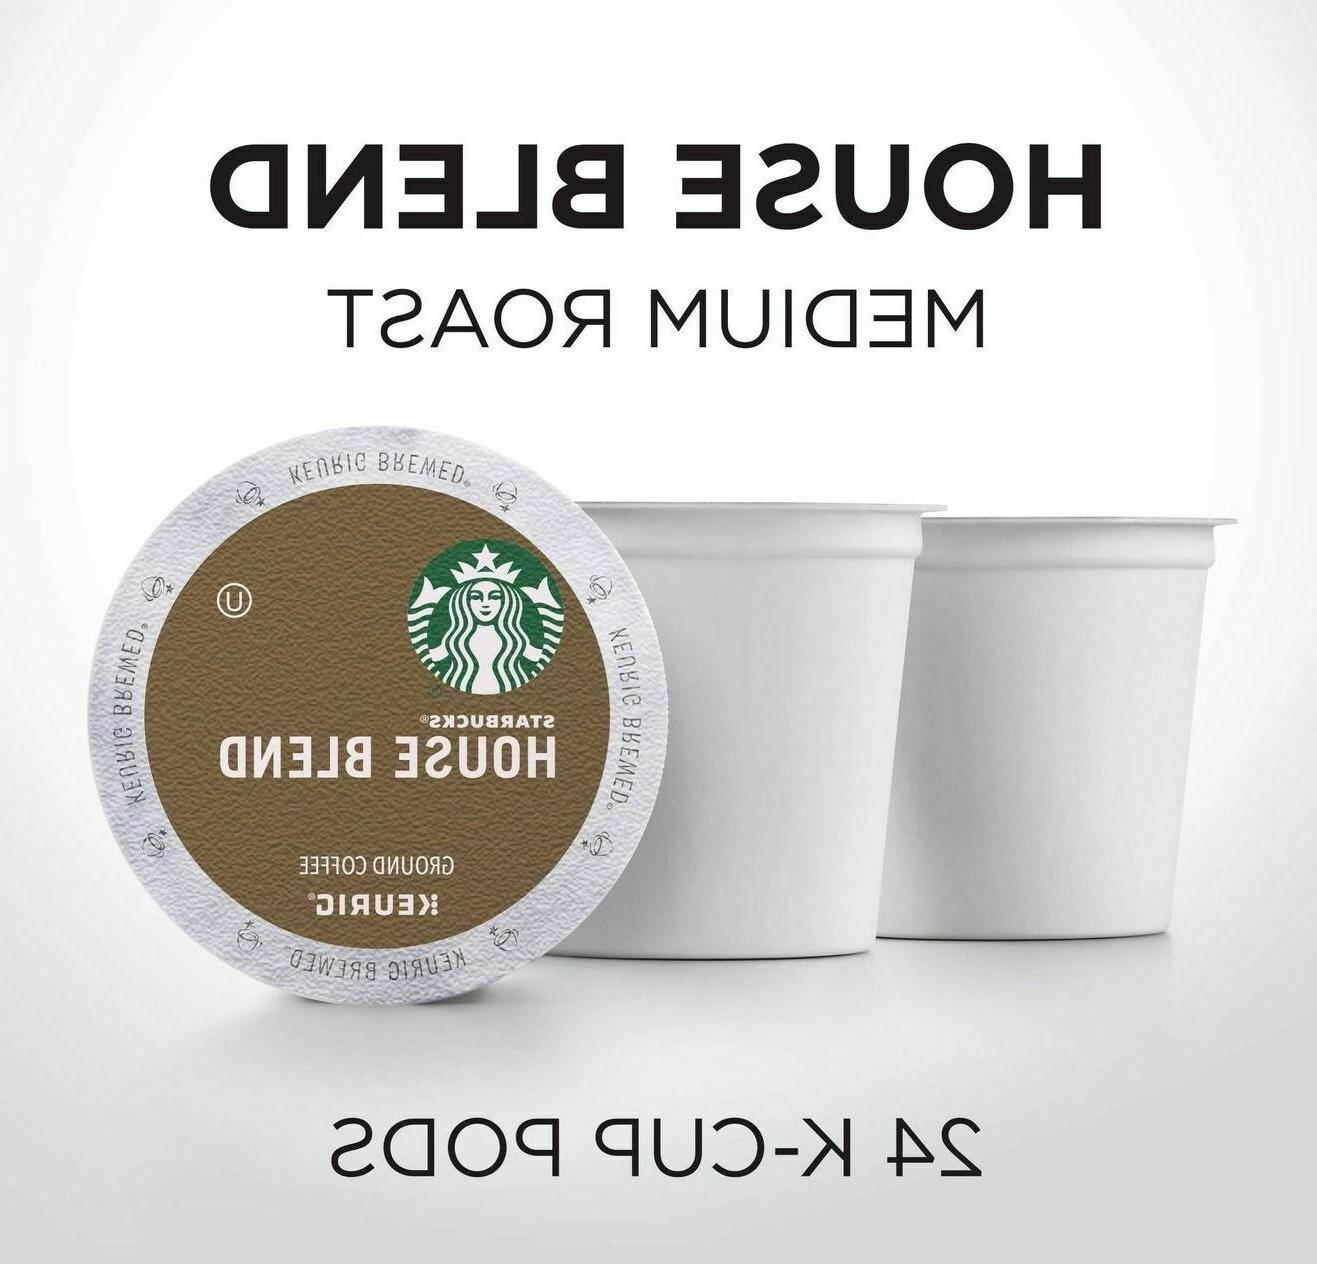 Starbucks Pack Pike Place/ House / Colombia / K -Cups TOTAL